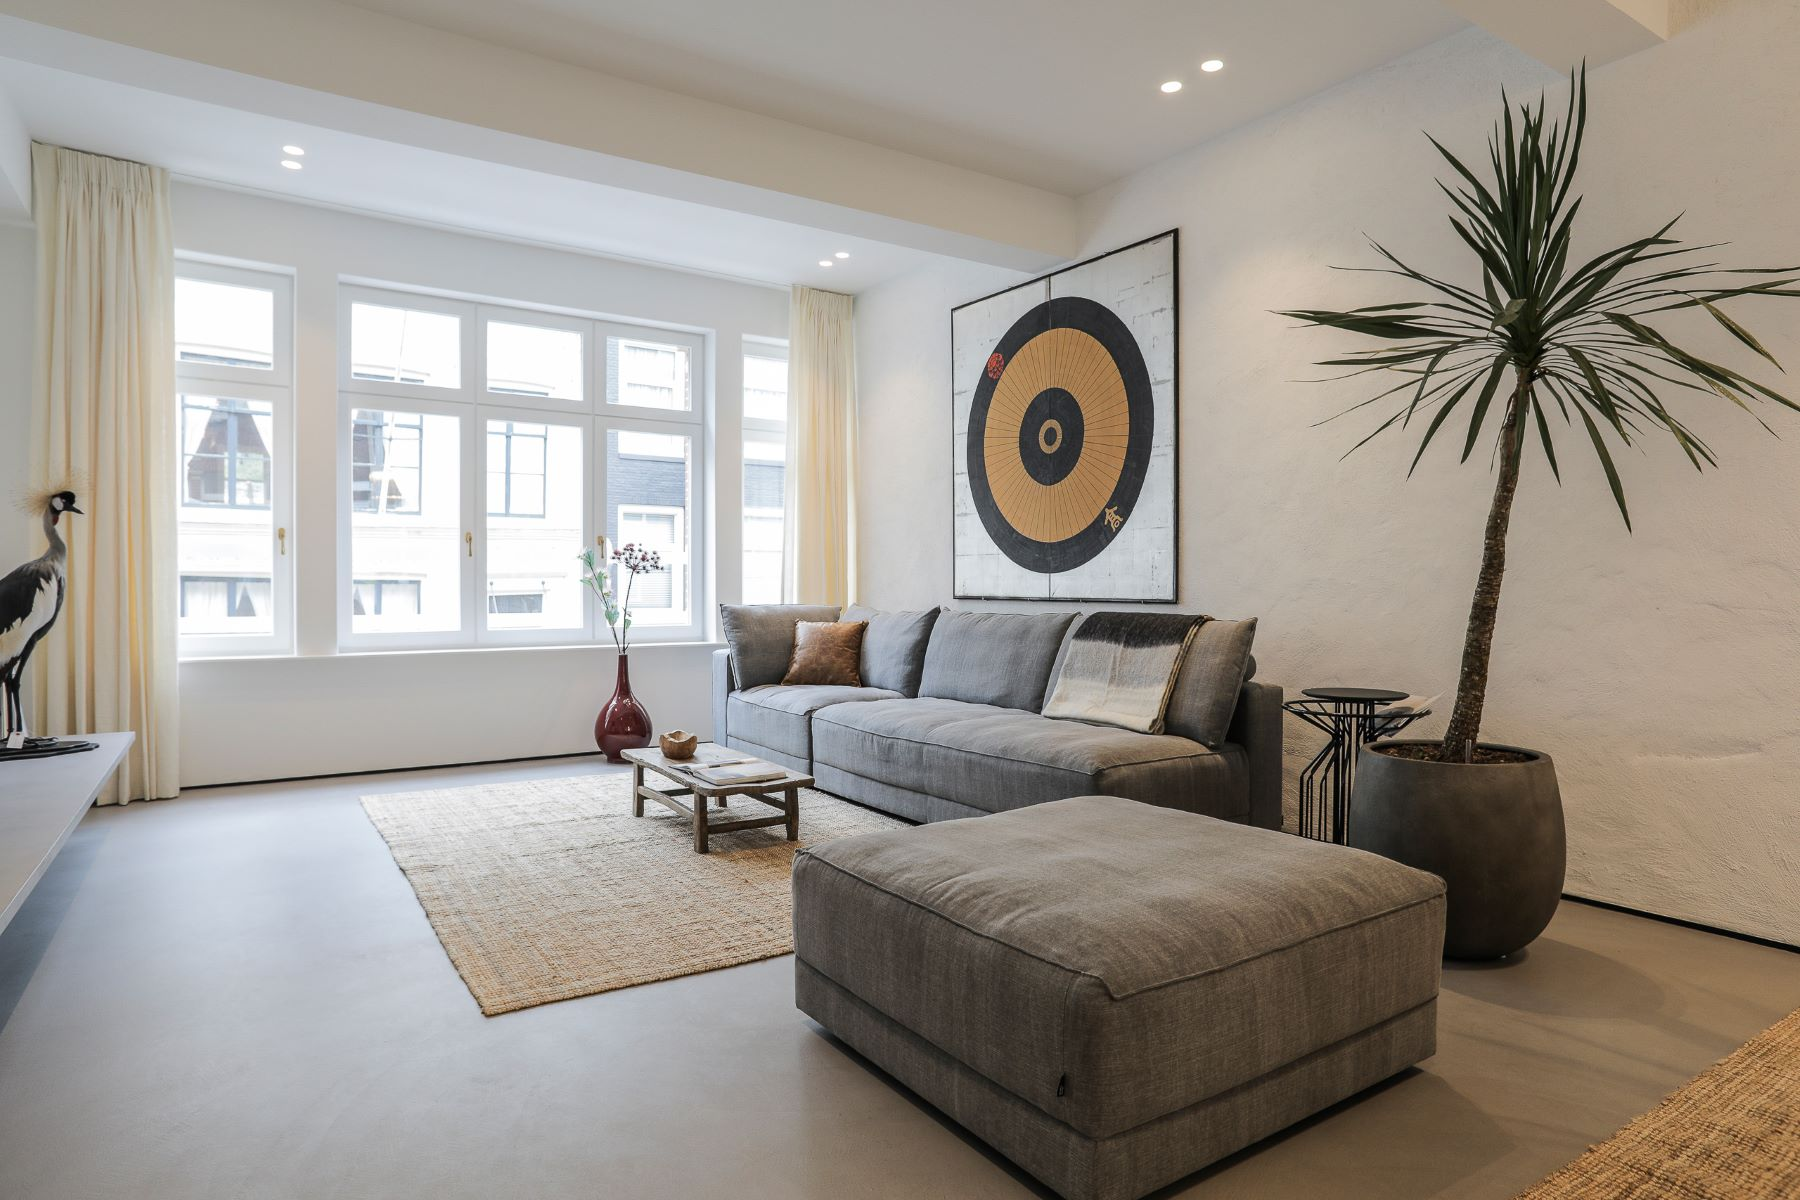 Apartment for Sale at Exceptional apartment in Amsterdam Kerkstraat 60B, Amsterdam, North Holland, 1017 GM Netherlands